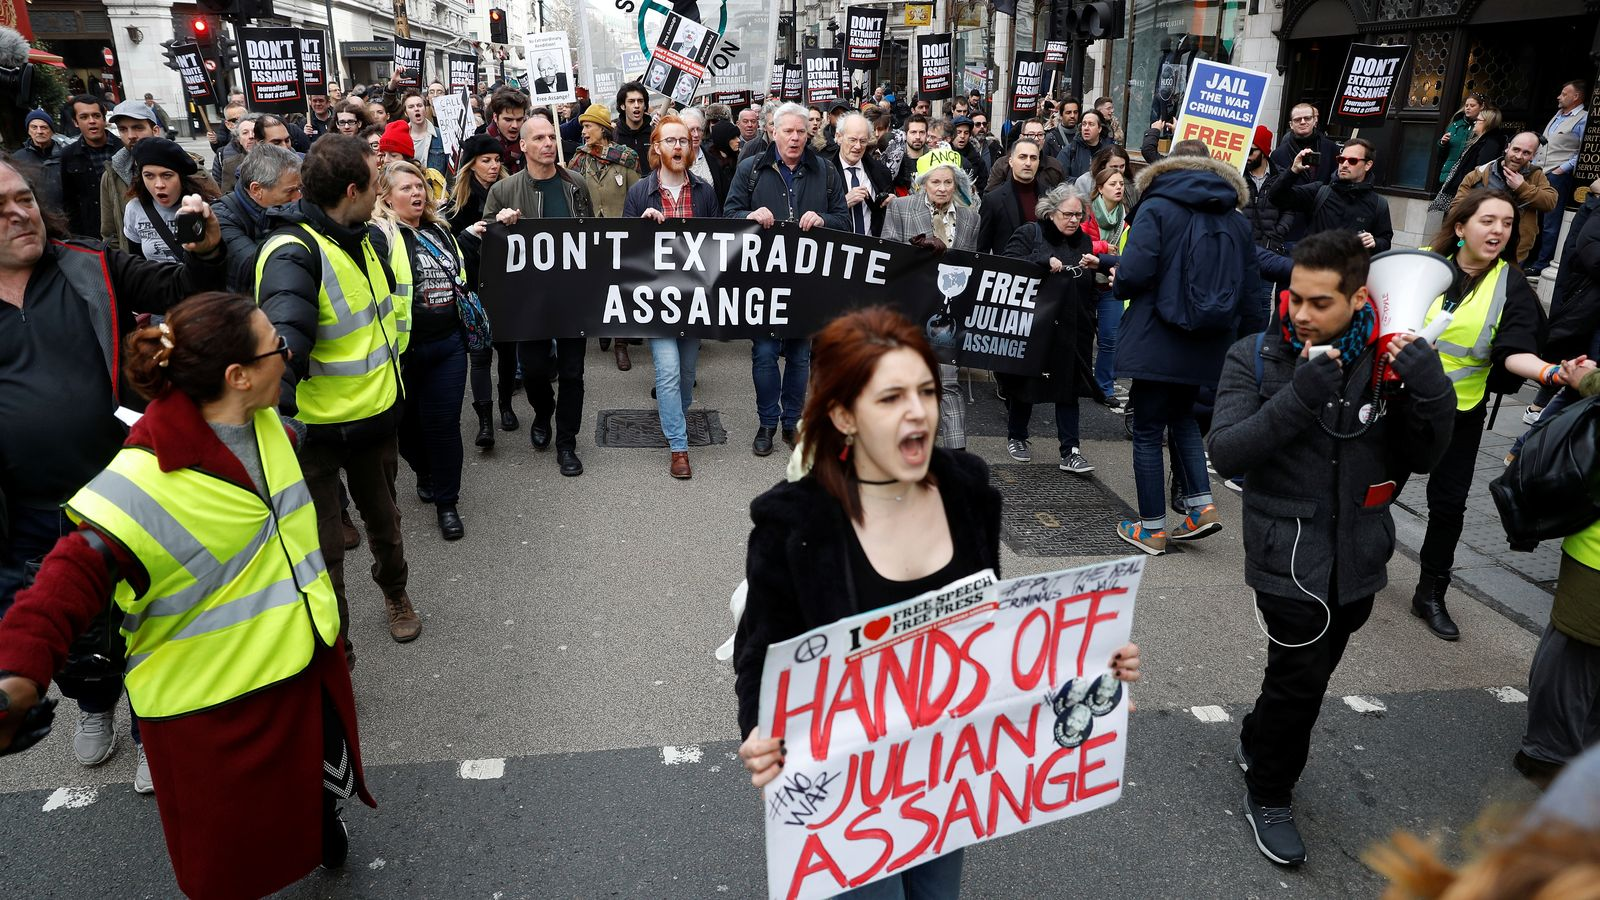 skynews-assange-extradition_4927984.jpg